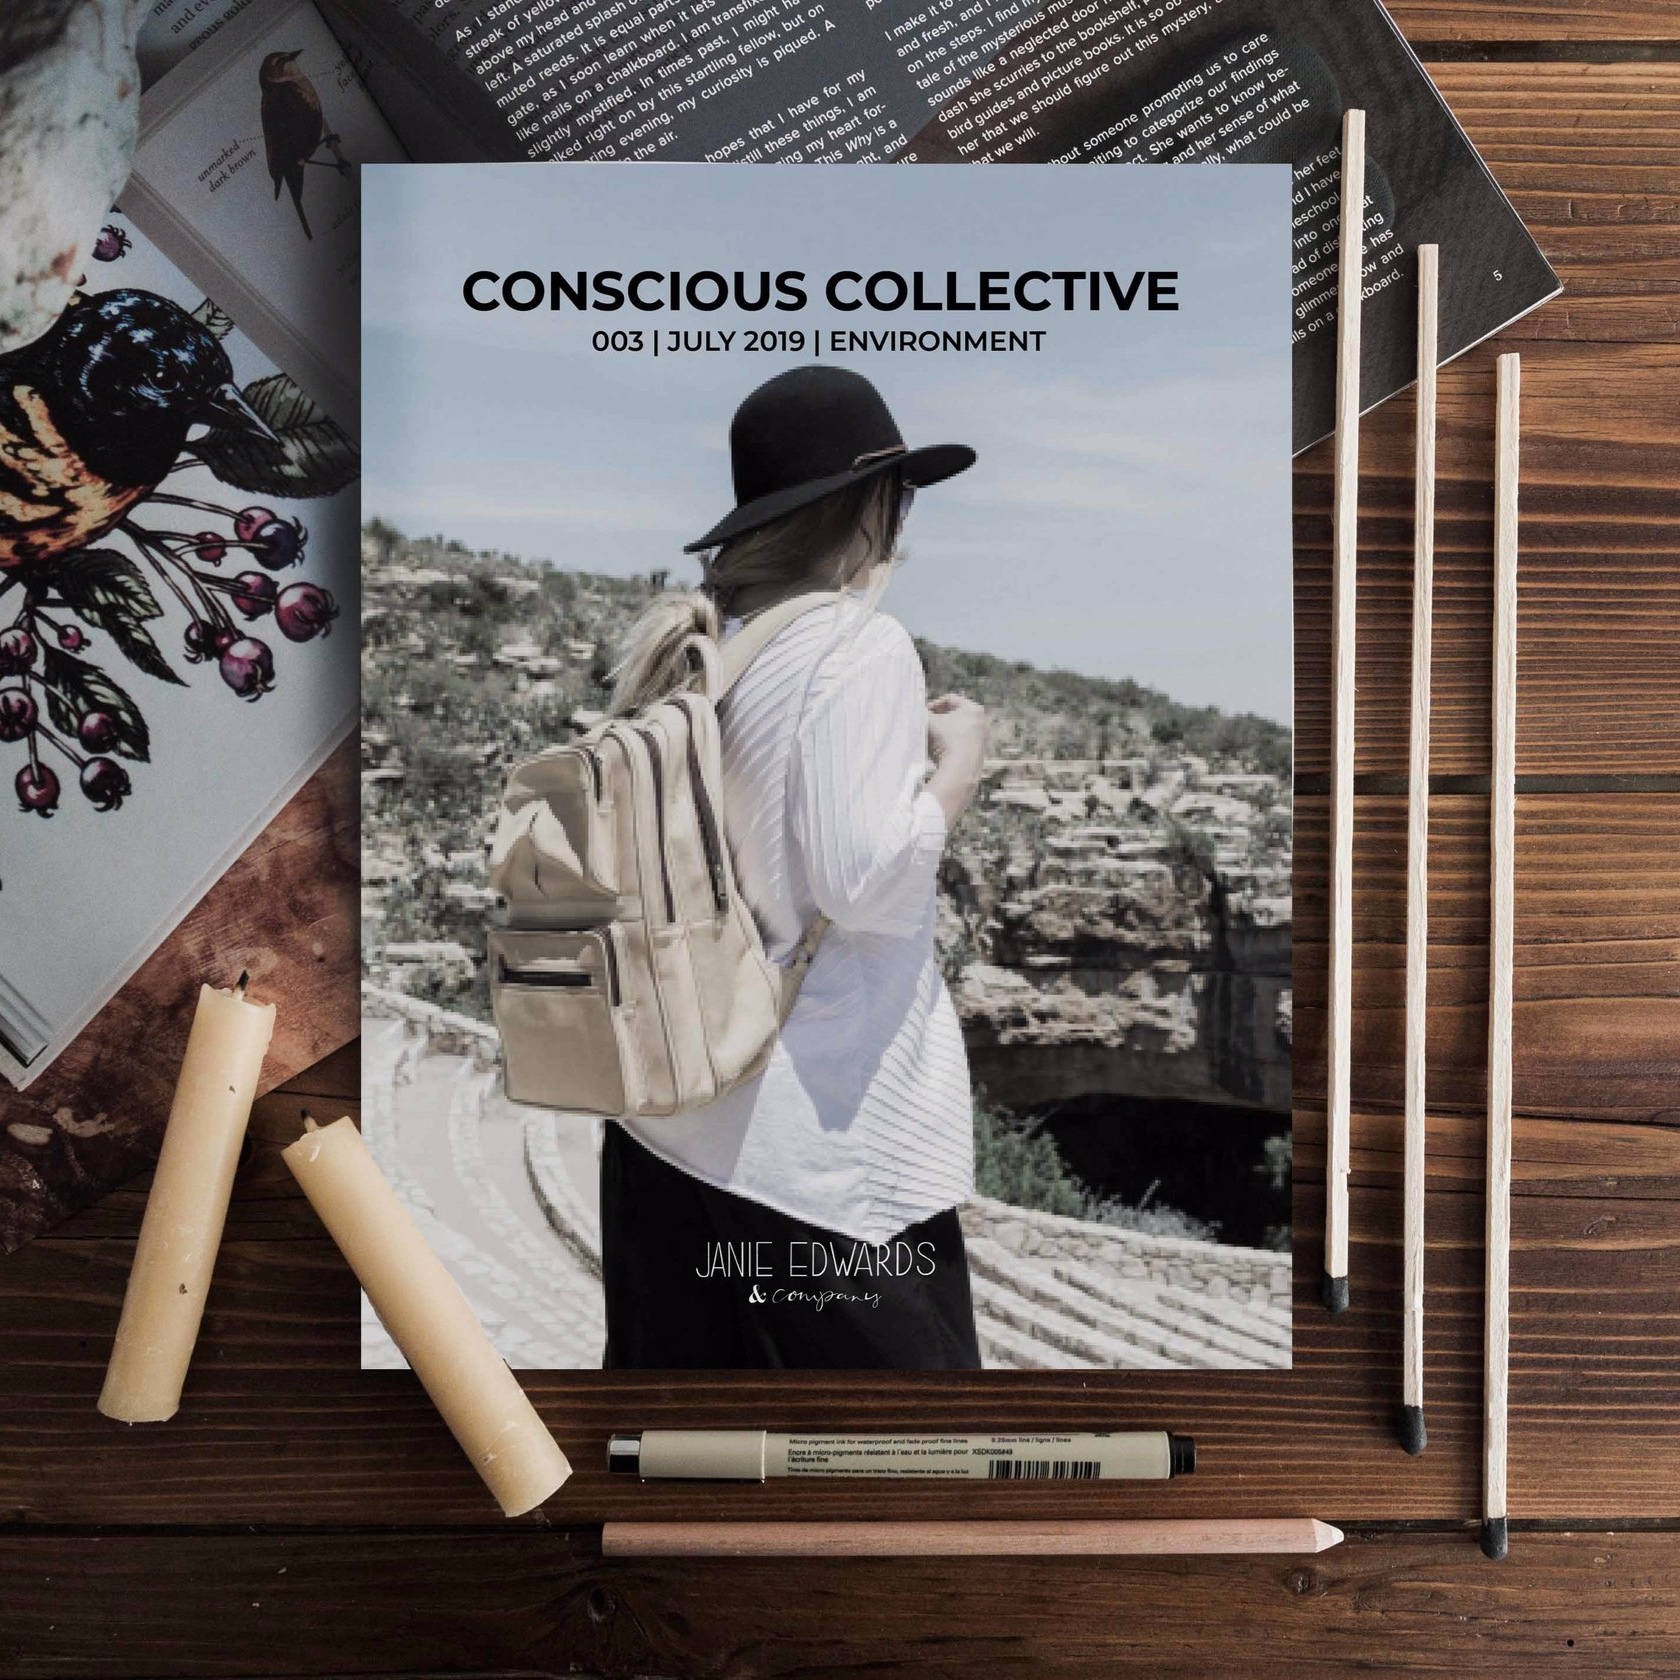 Collective Library - Click here to see all Collectives